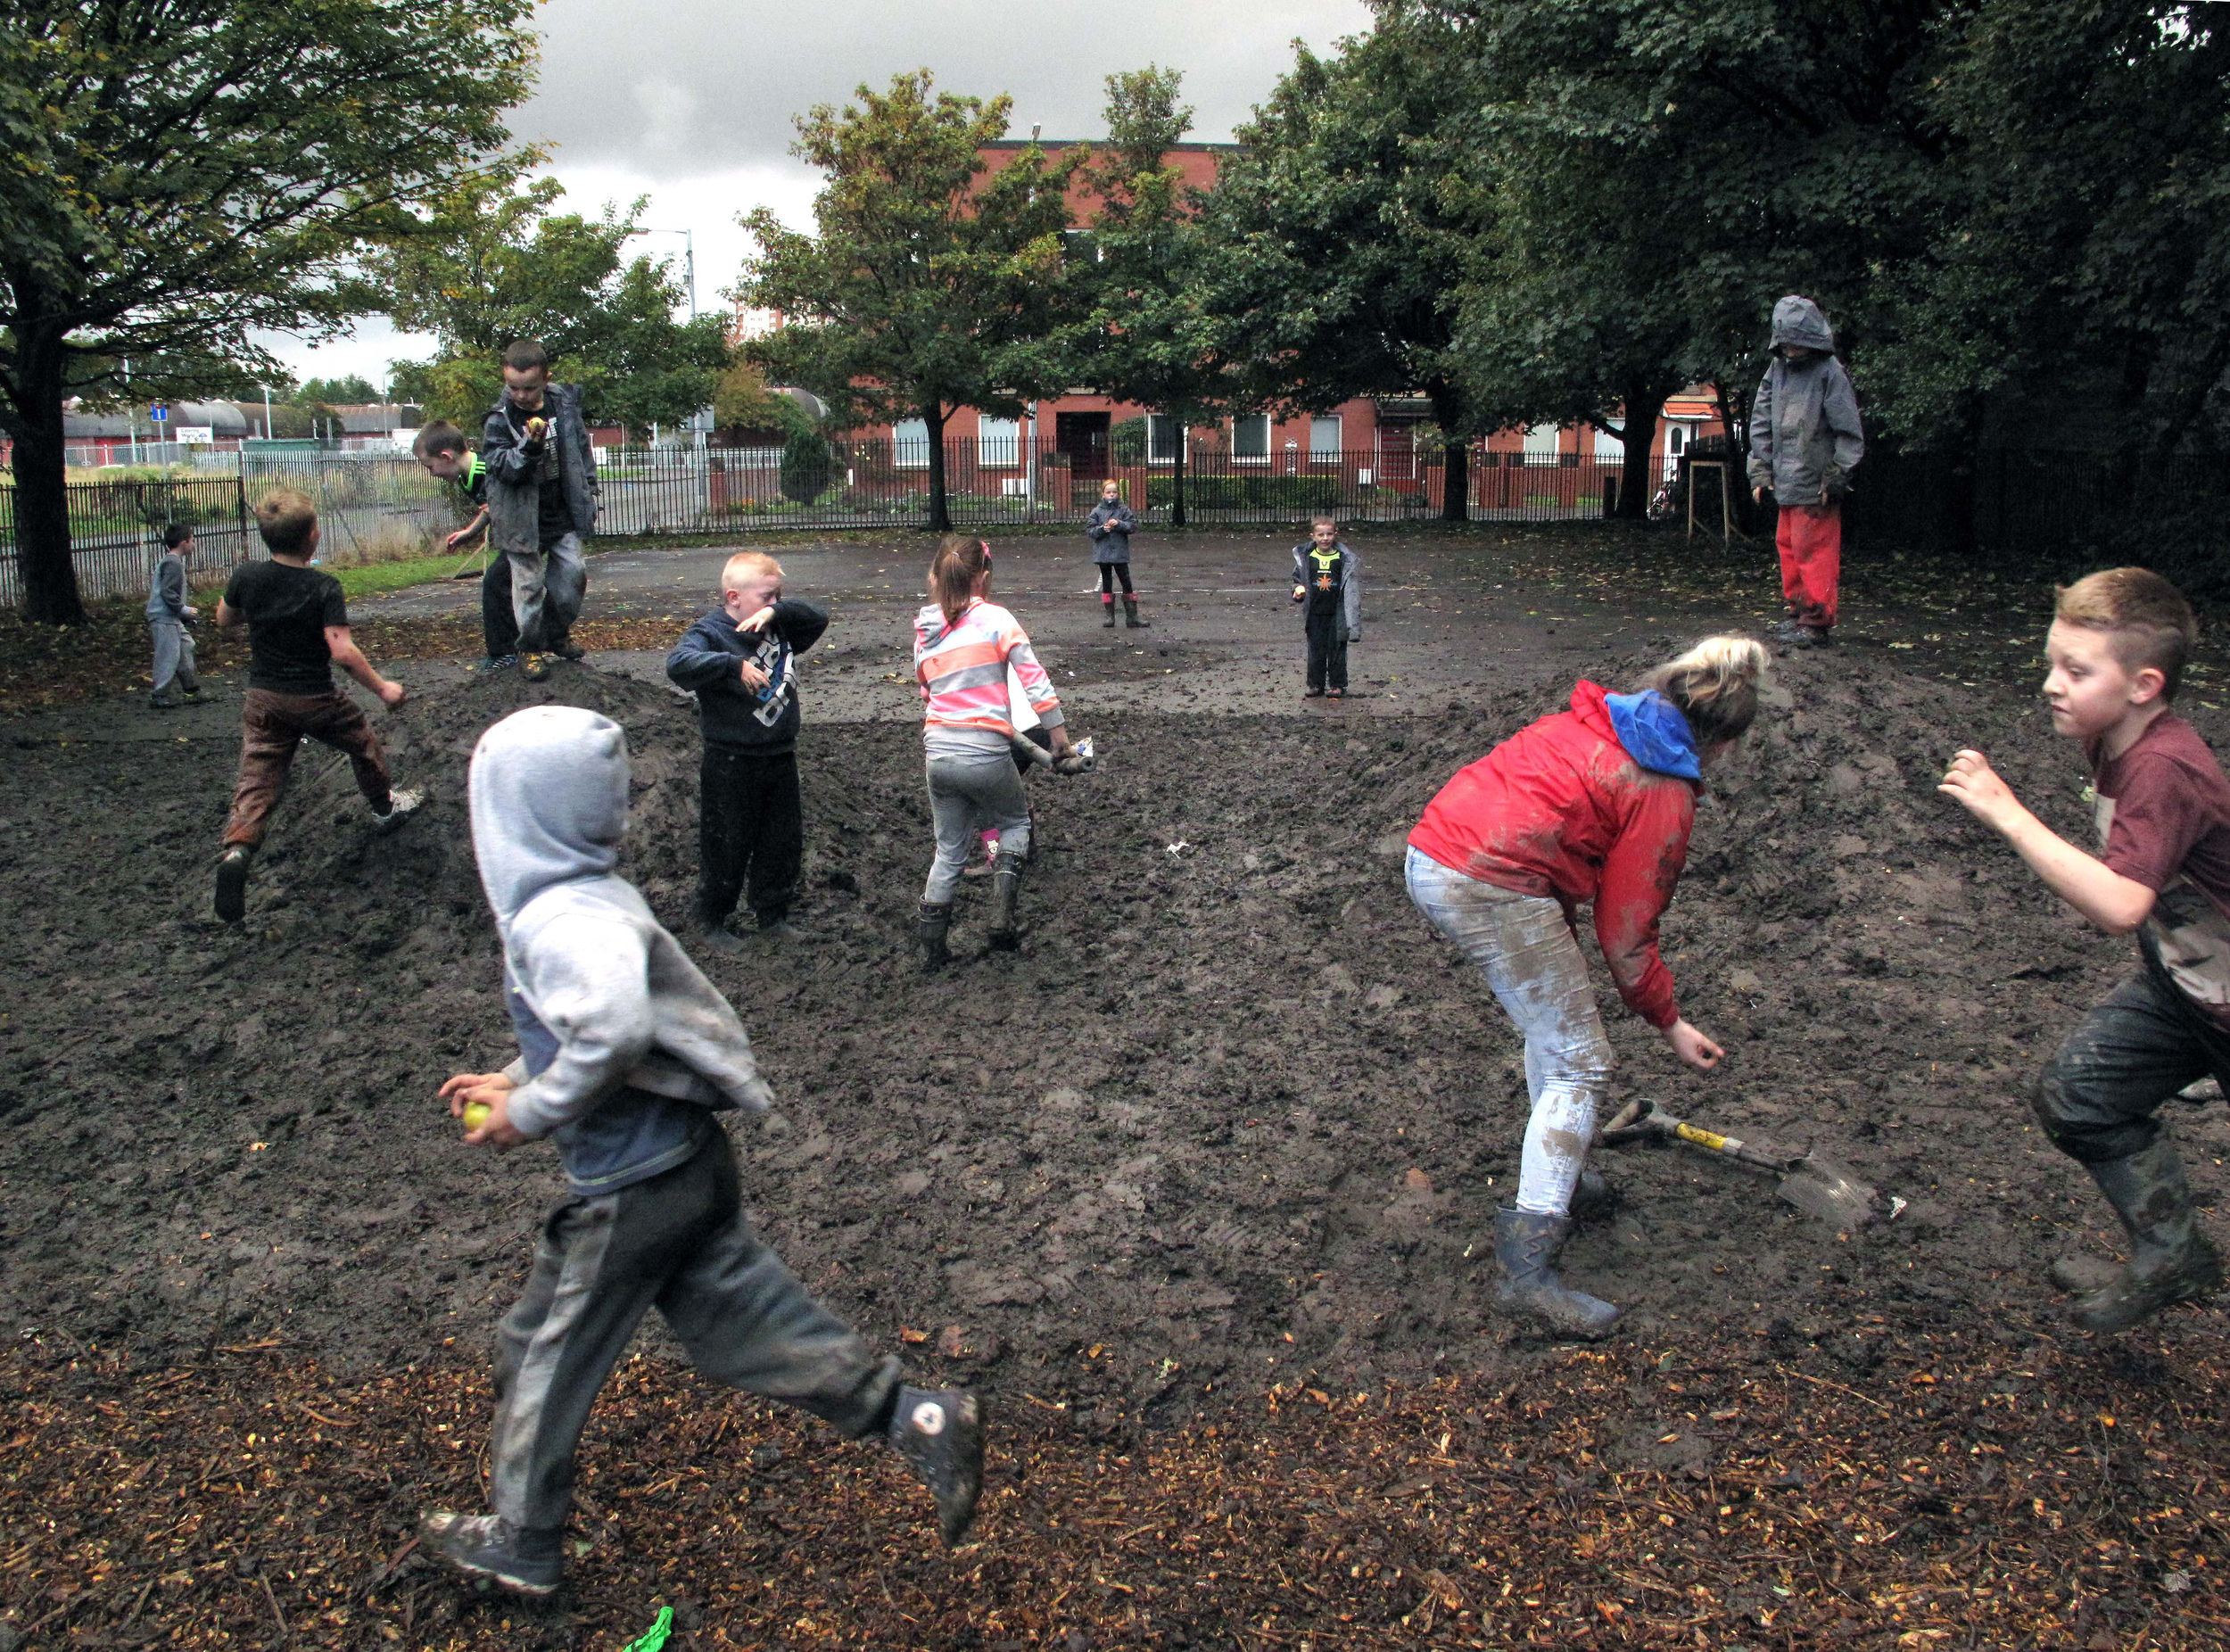 Baltic Street Adventure Playground. Image courtesy of Assemble.